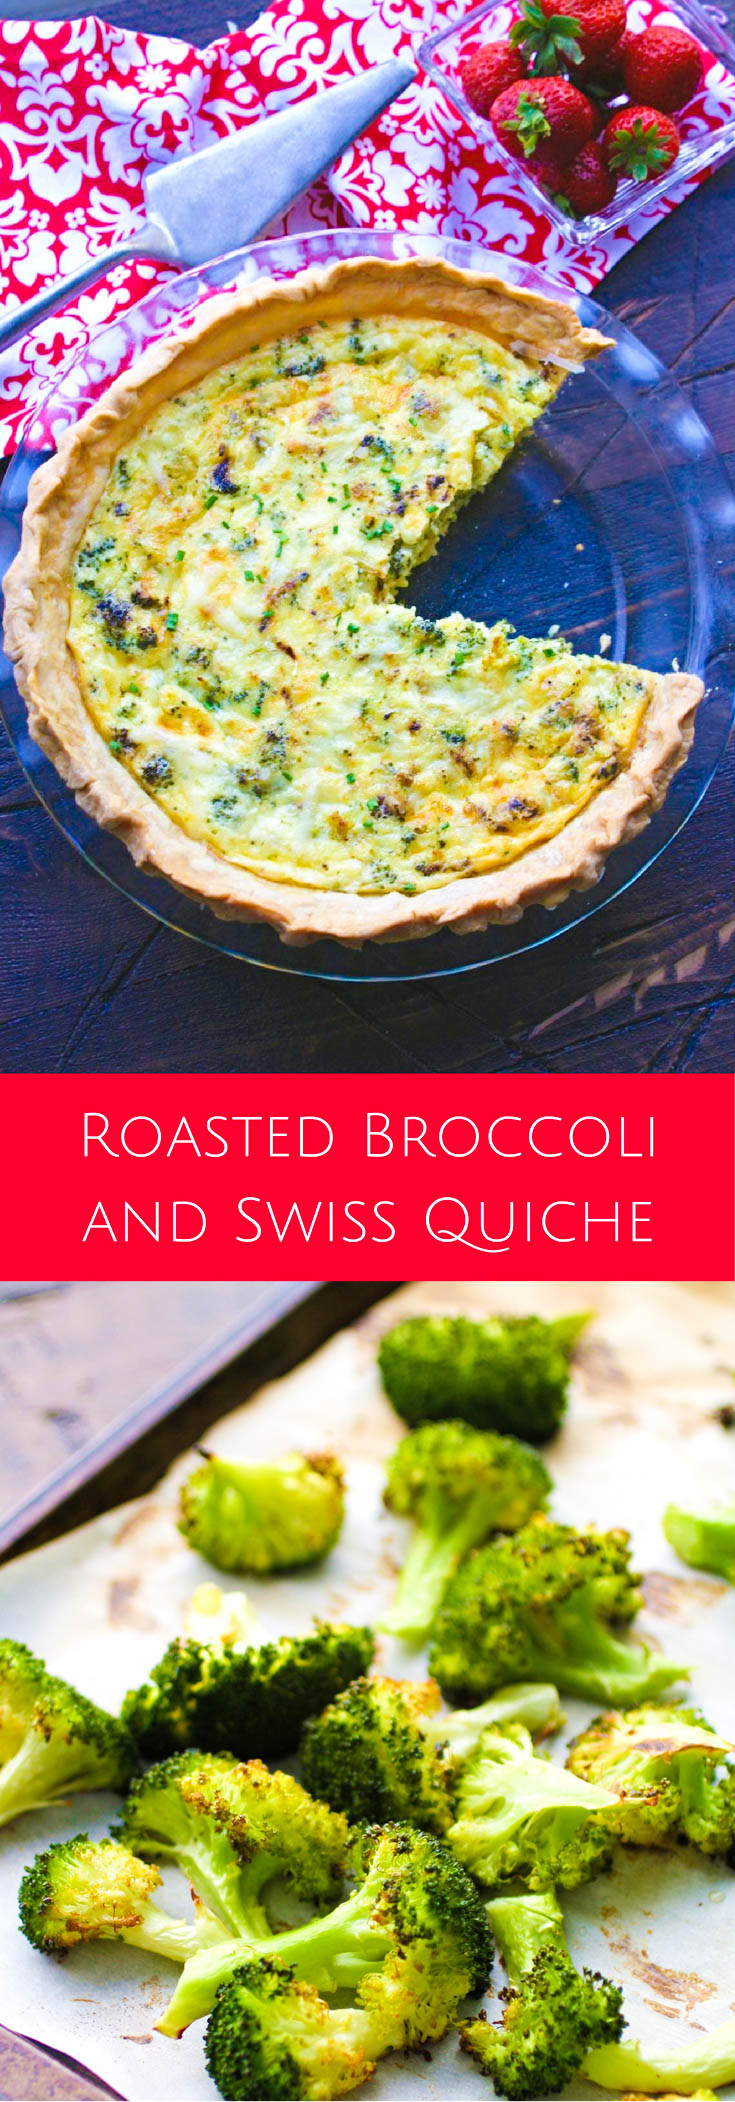 Roasted Broccoli and Swiss Quiche is a delightful dish for a special brunch, or for dinner. Roasted Broccoli and Swiss Quiche is an easy-to-make, filling and flavorful meal.